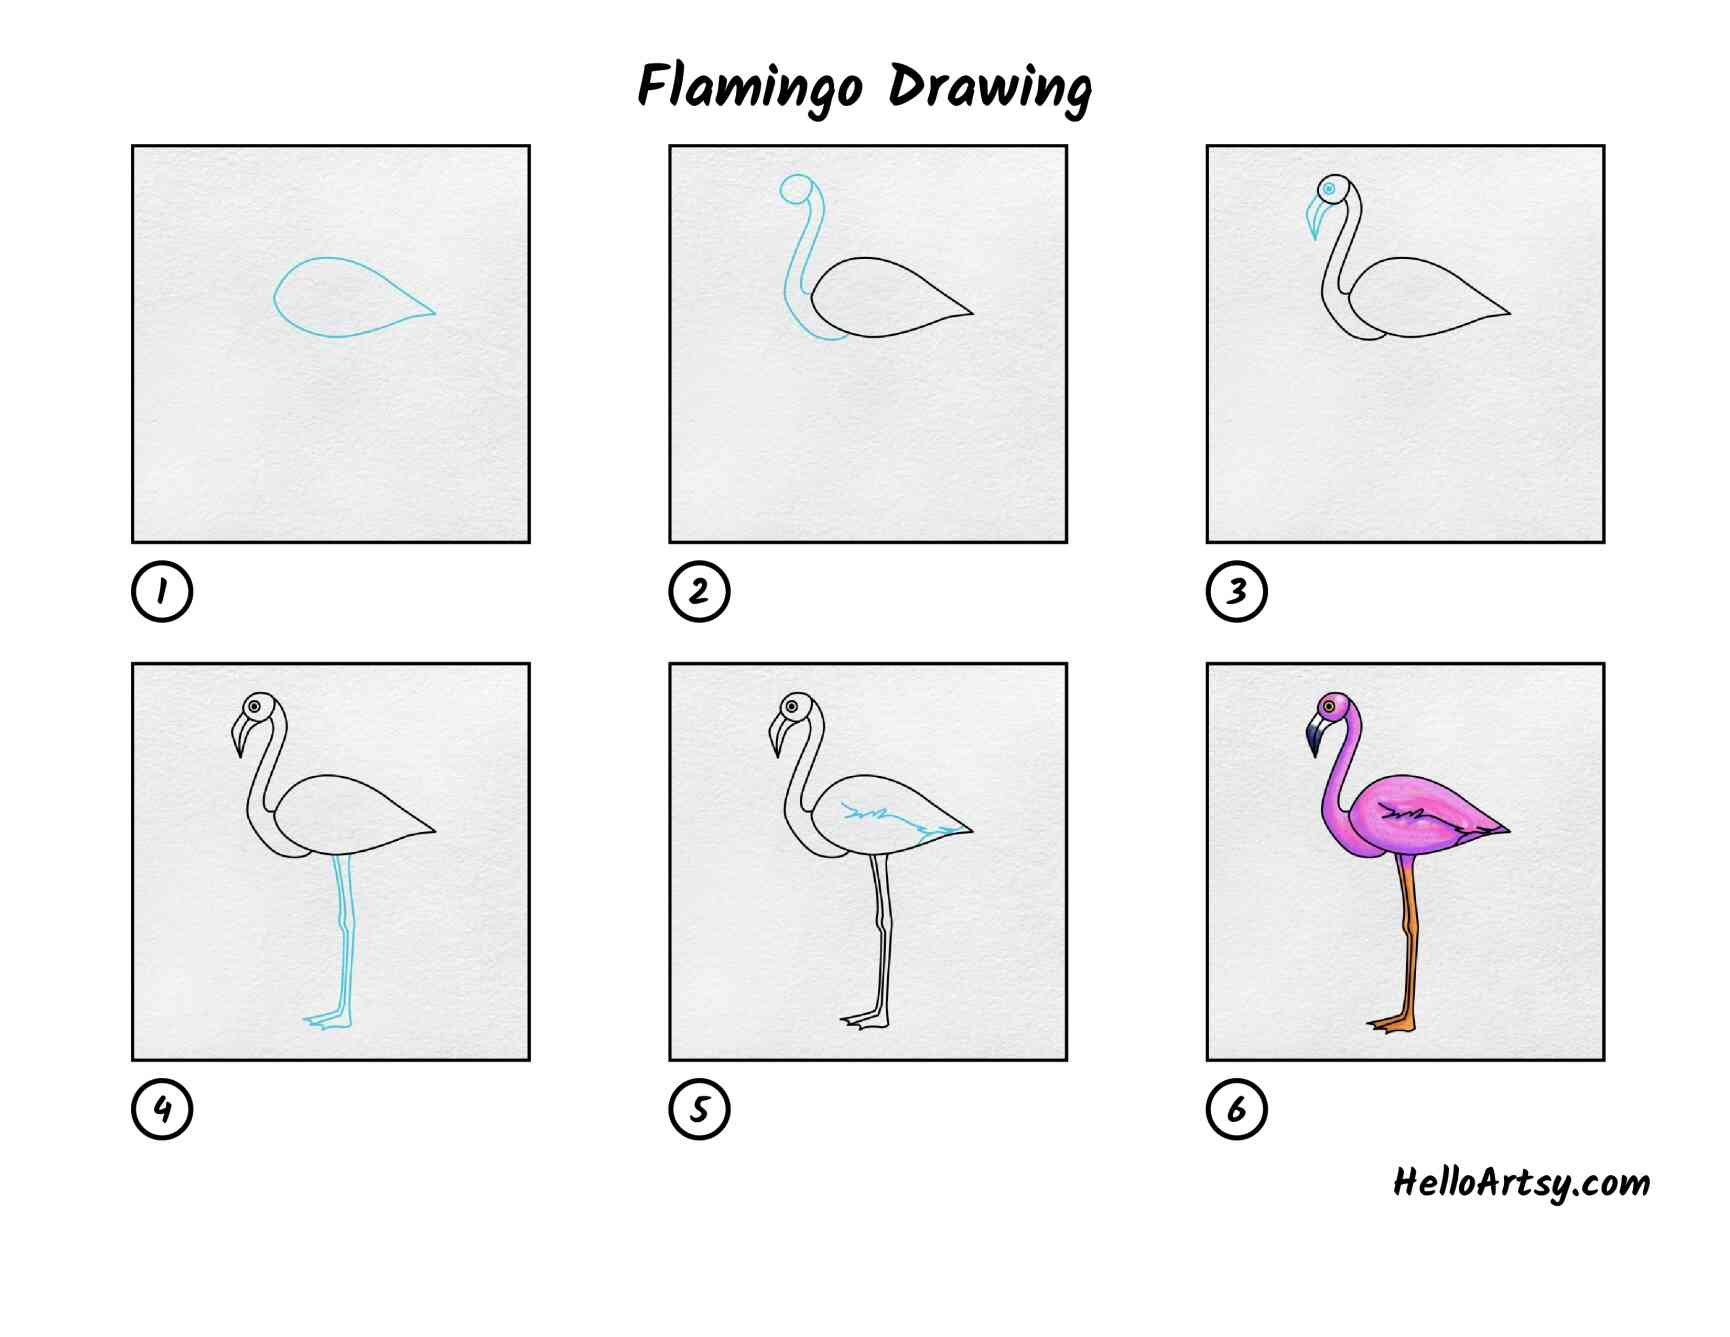 Flamingo Drawing: All Steps